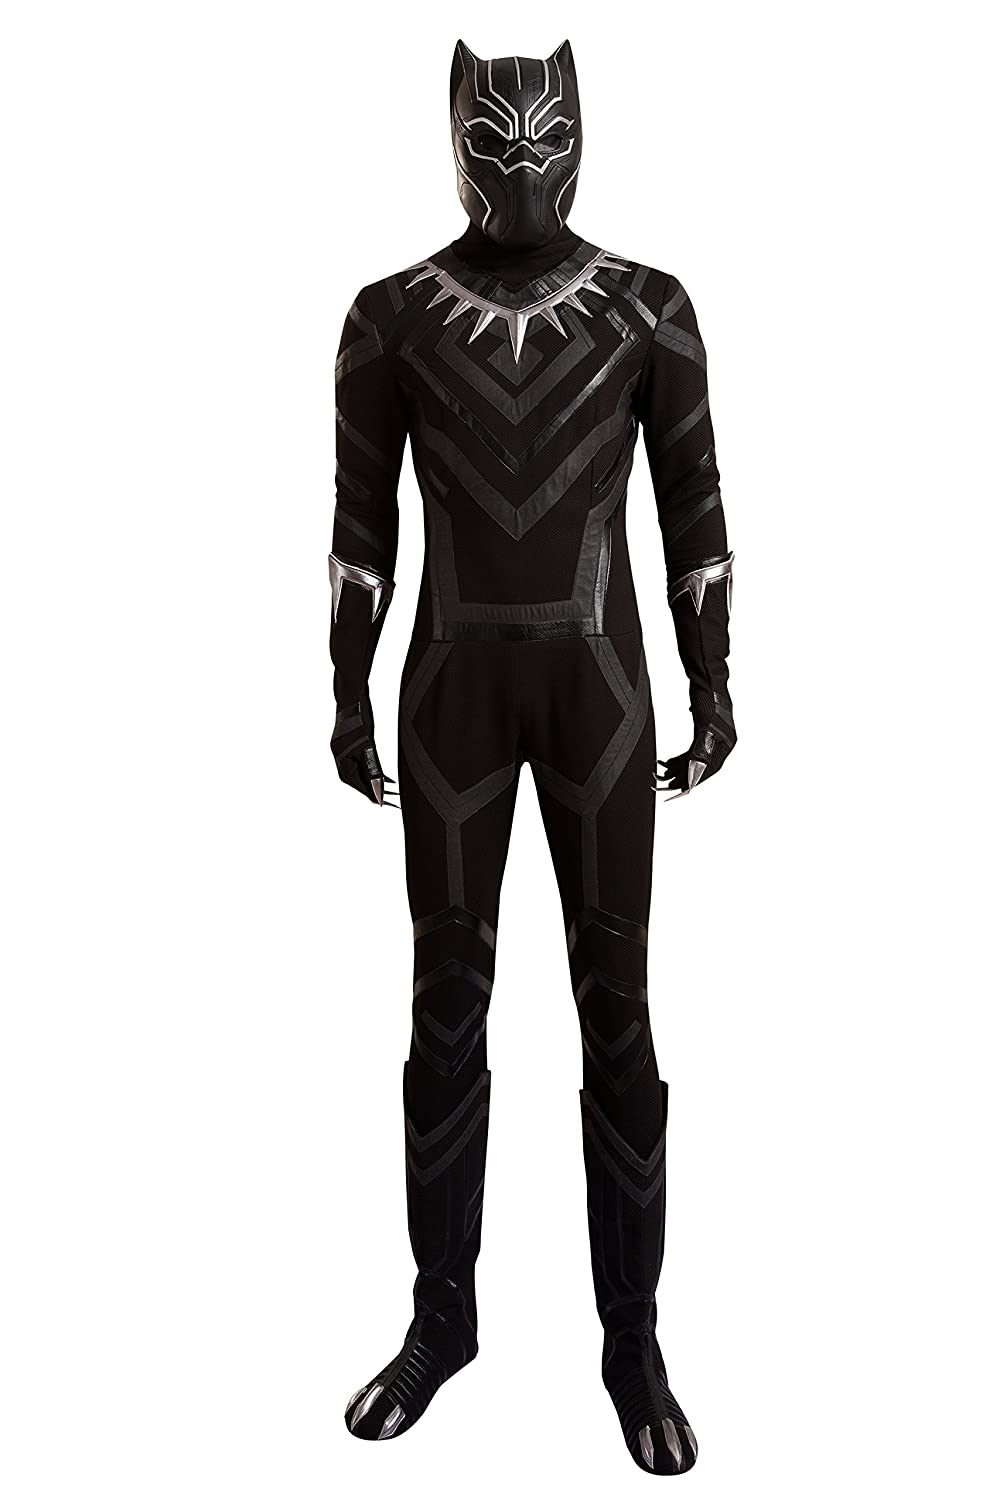 Cosfunmax Black Panther Cosplay Costume Suit Hot Movie Outfit Costume